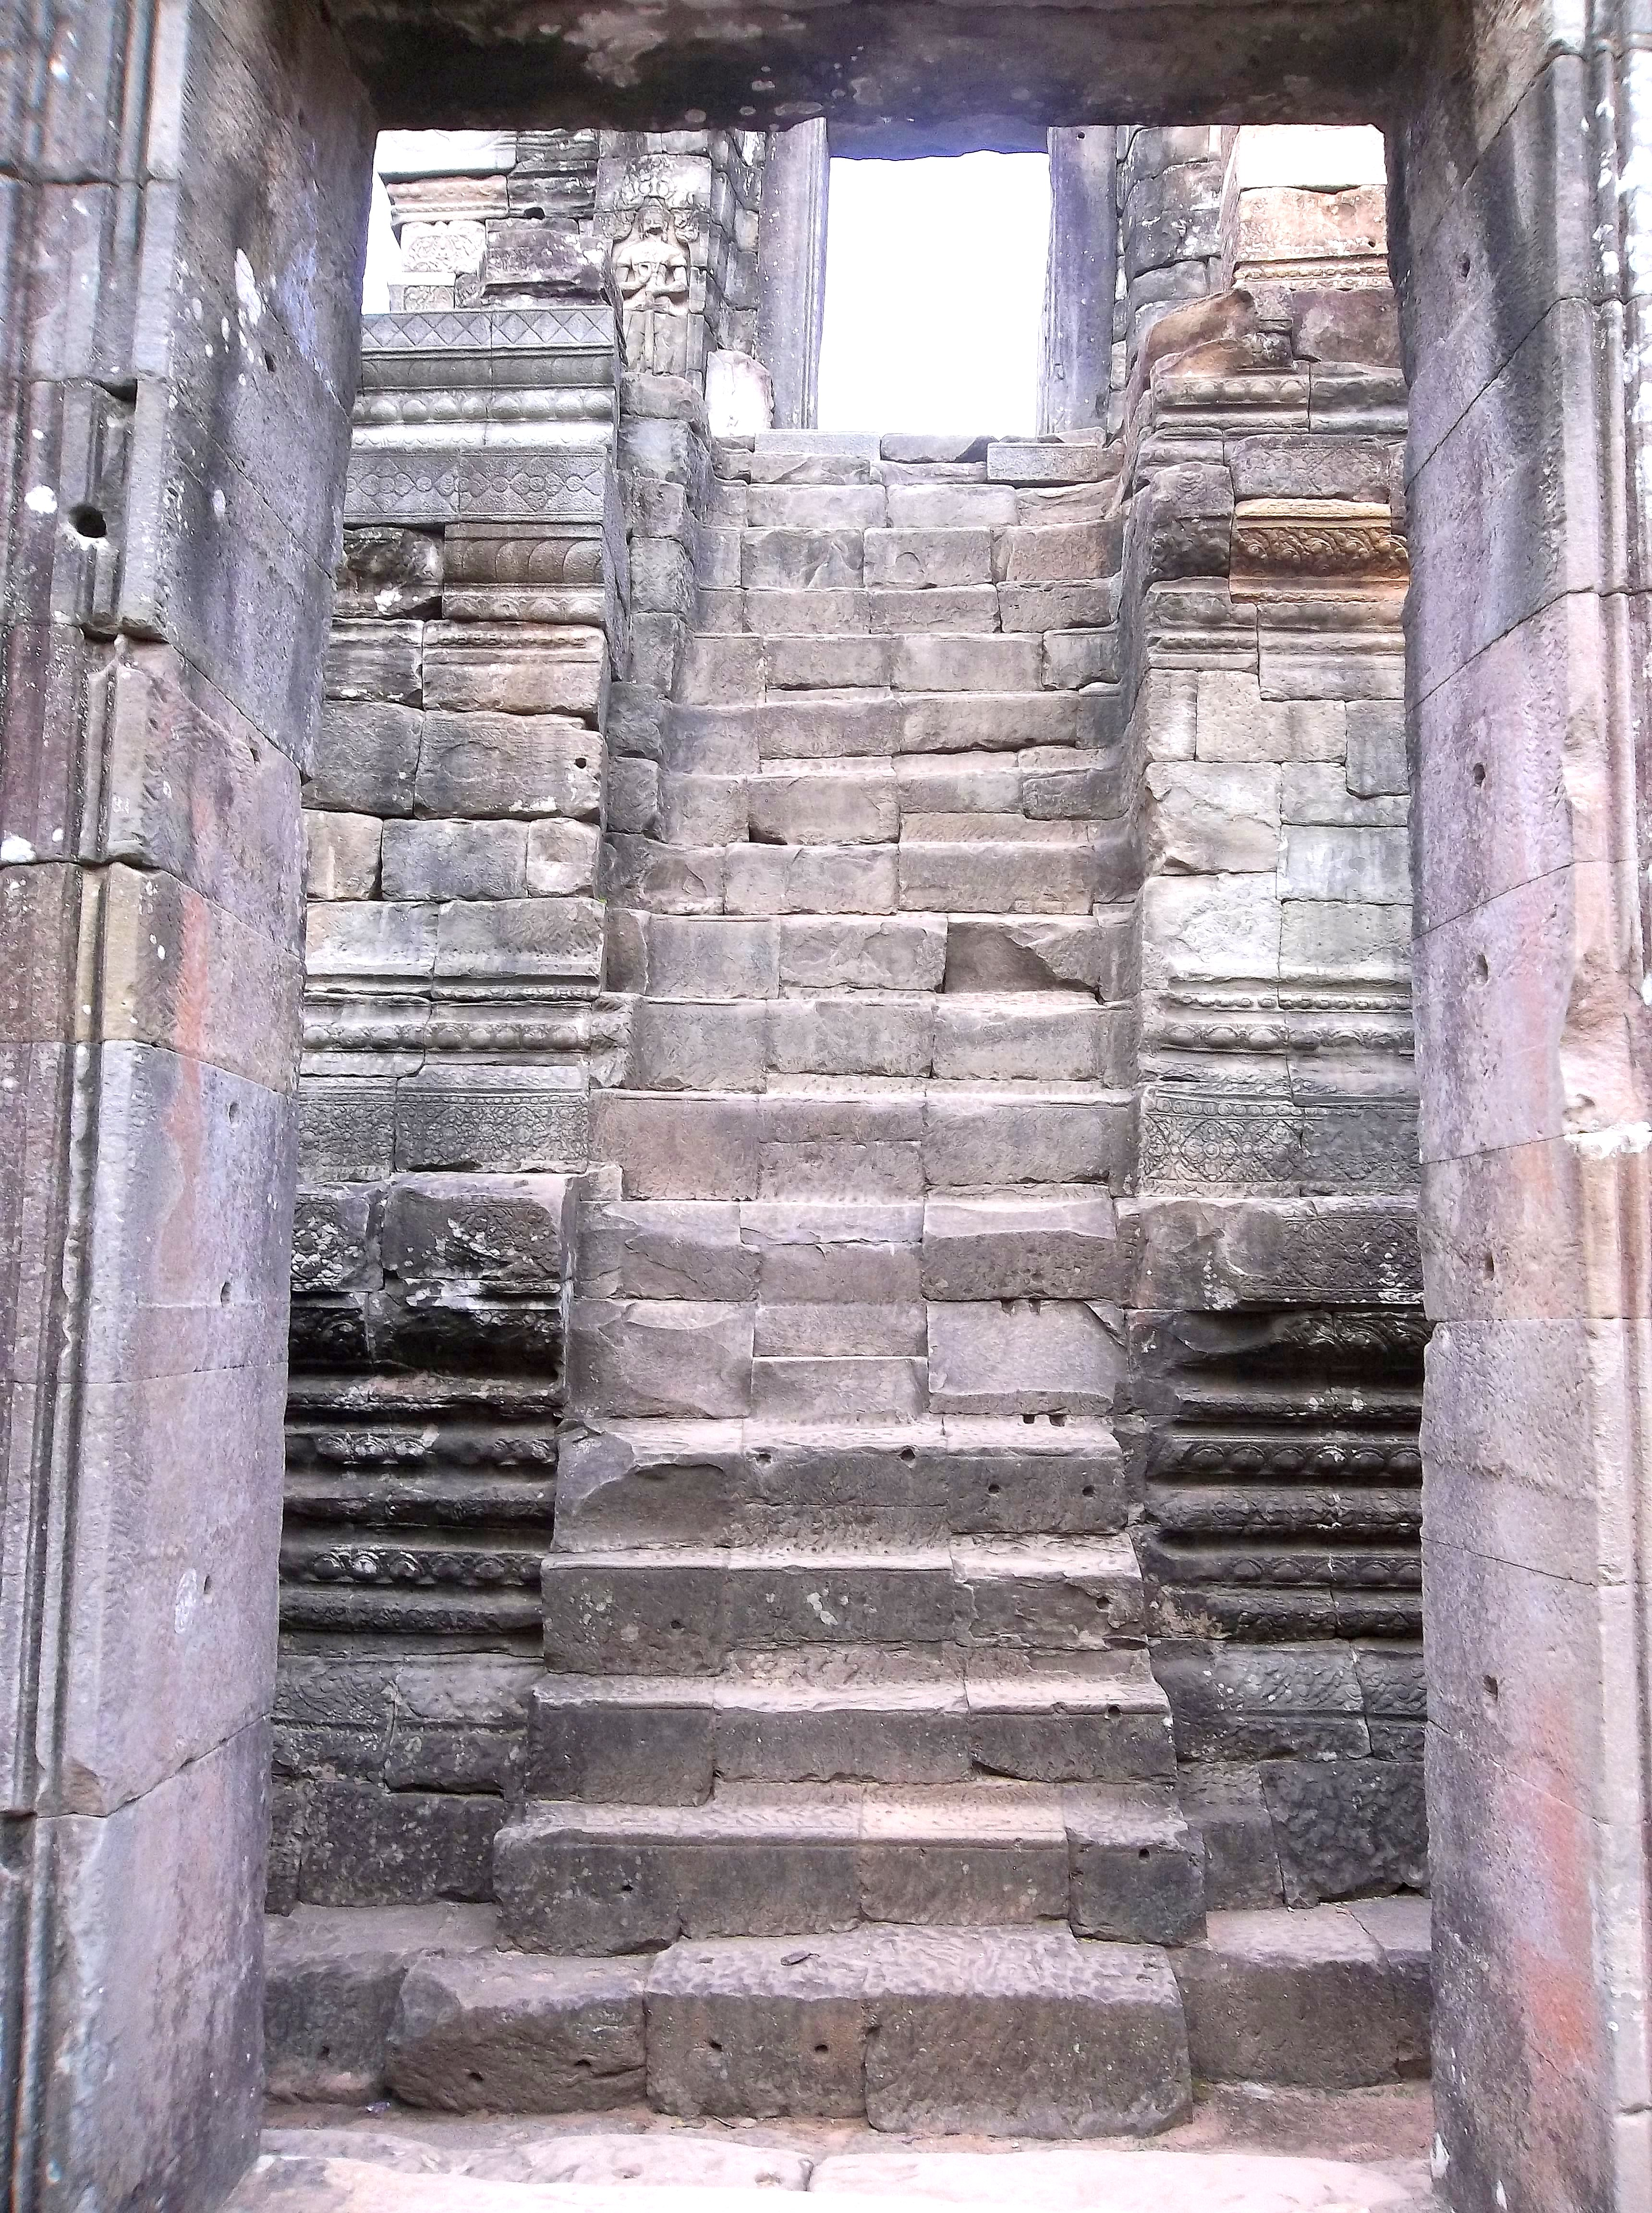 Bayon is filled with Corridors & Stairs - Cambodia